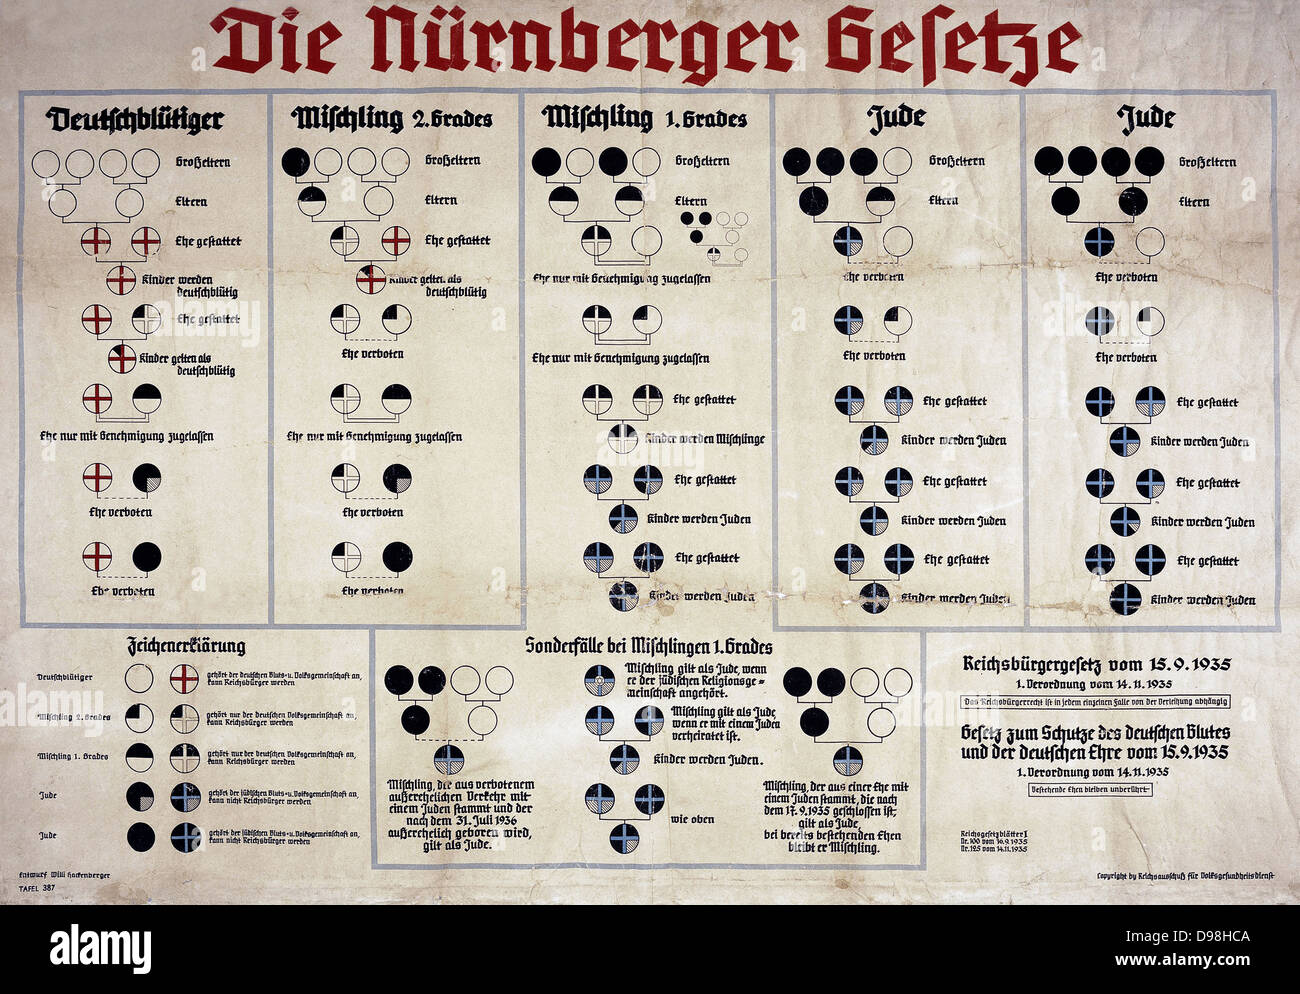 Chart from Nazi Germany explaining the Nuremberg Laws of 1935 ...